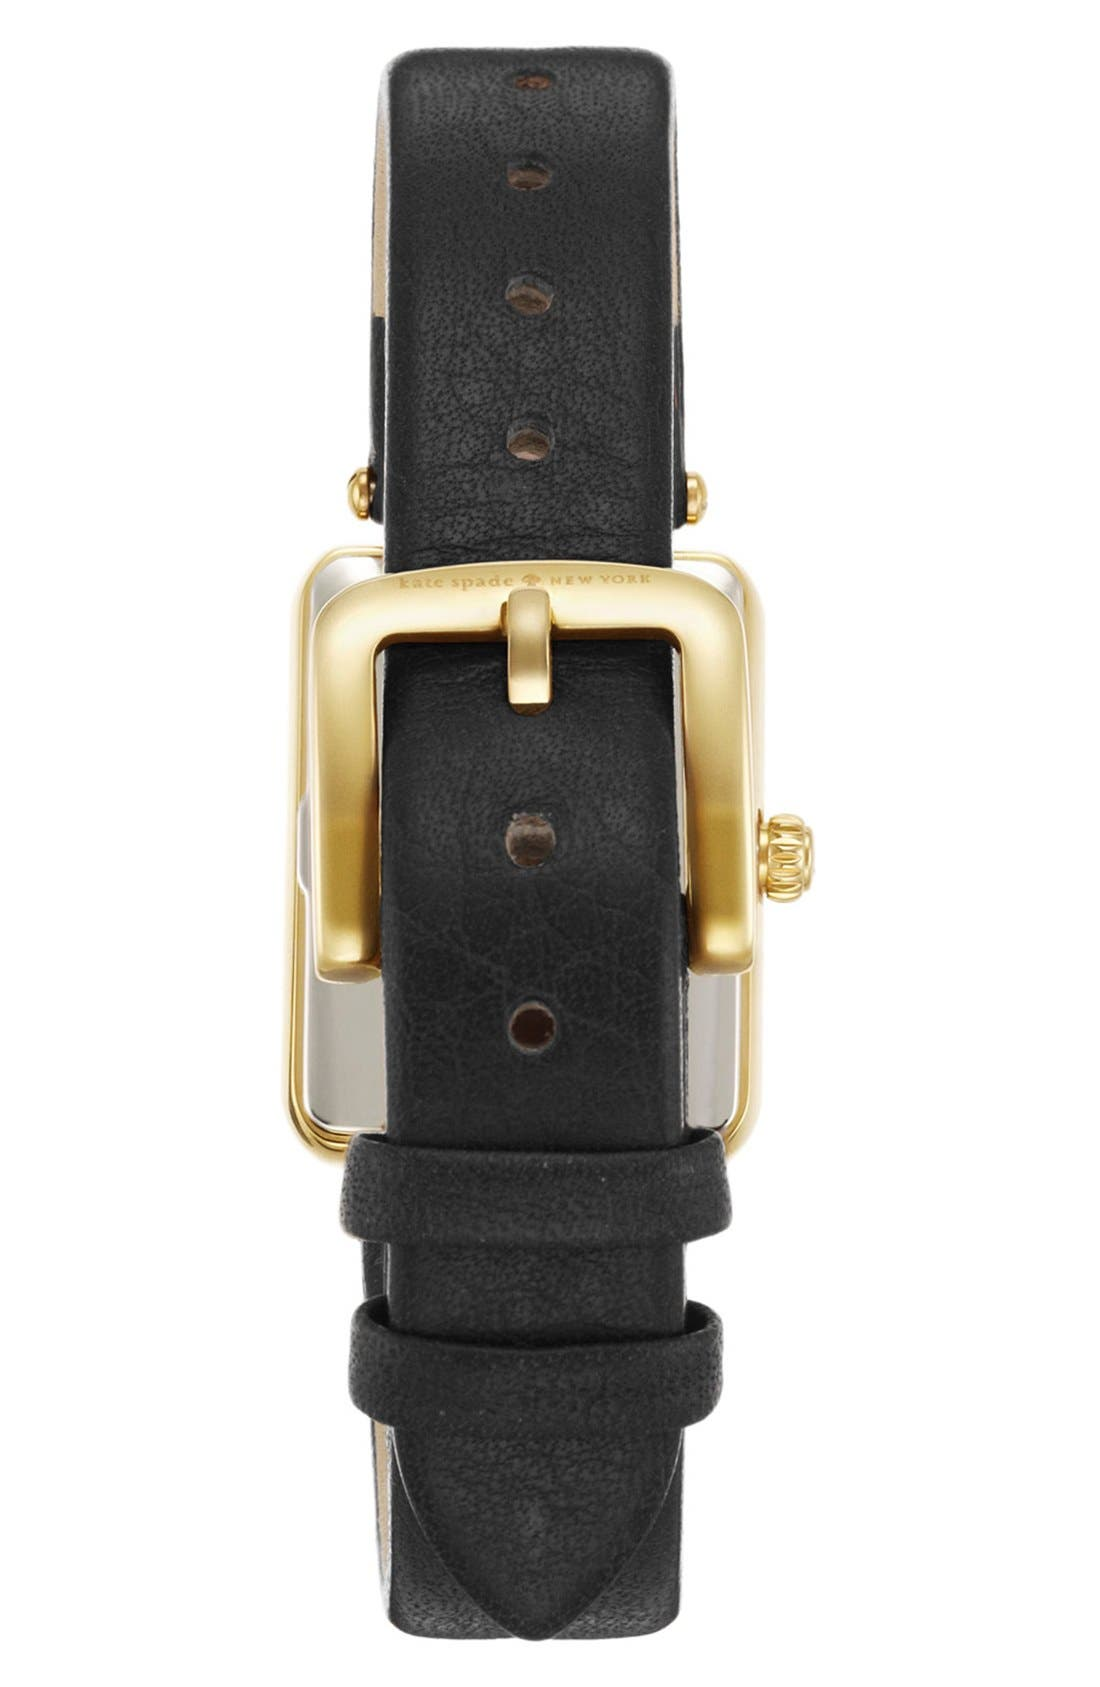 KATE SPADE NEW YORK, 'paley' rectangular leather strap watch, 21mm x 28mm, Alternate thumbnail 2, color, 001